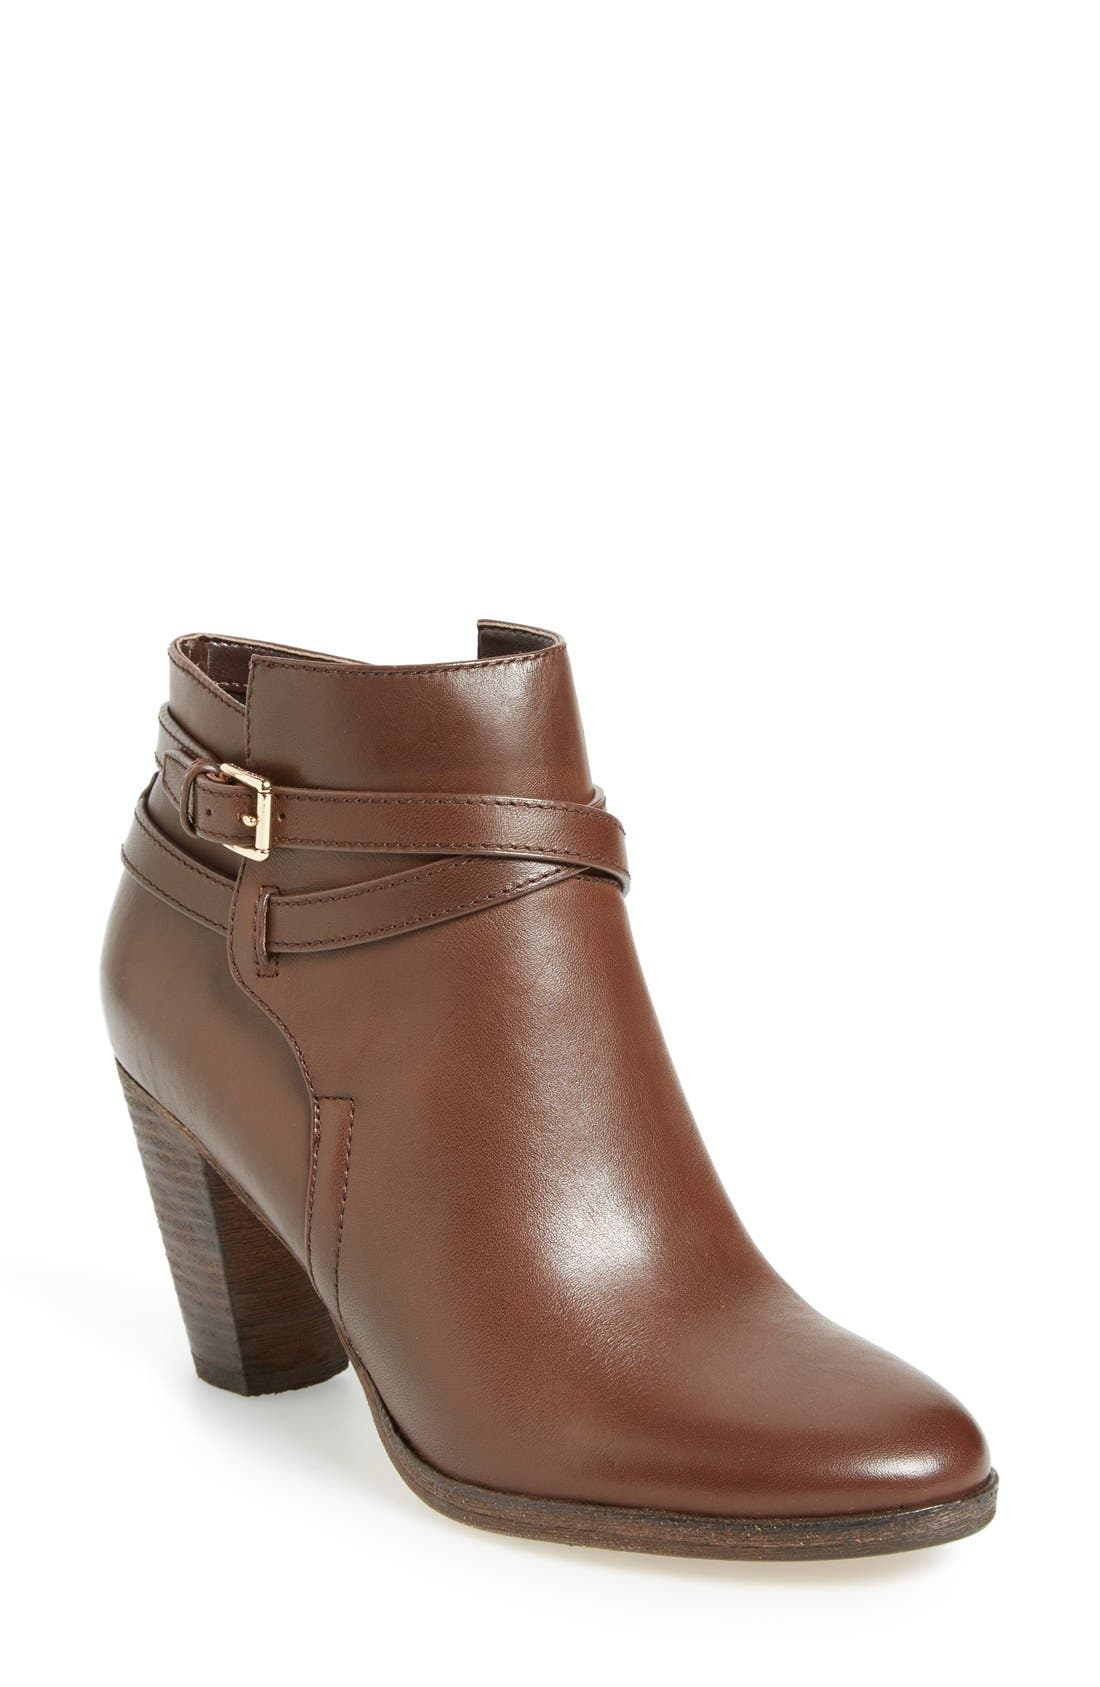 'Hayes' Block Heel Bootie,                             Main thumbnail 1, color,                             Chestnut Leather